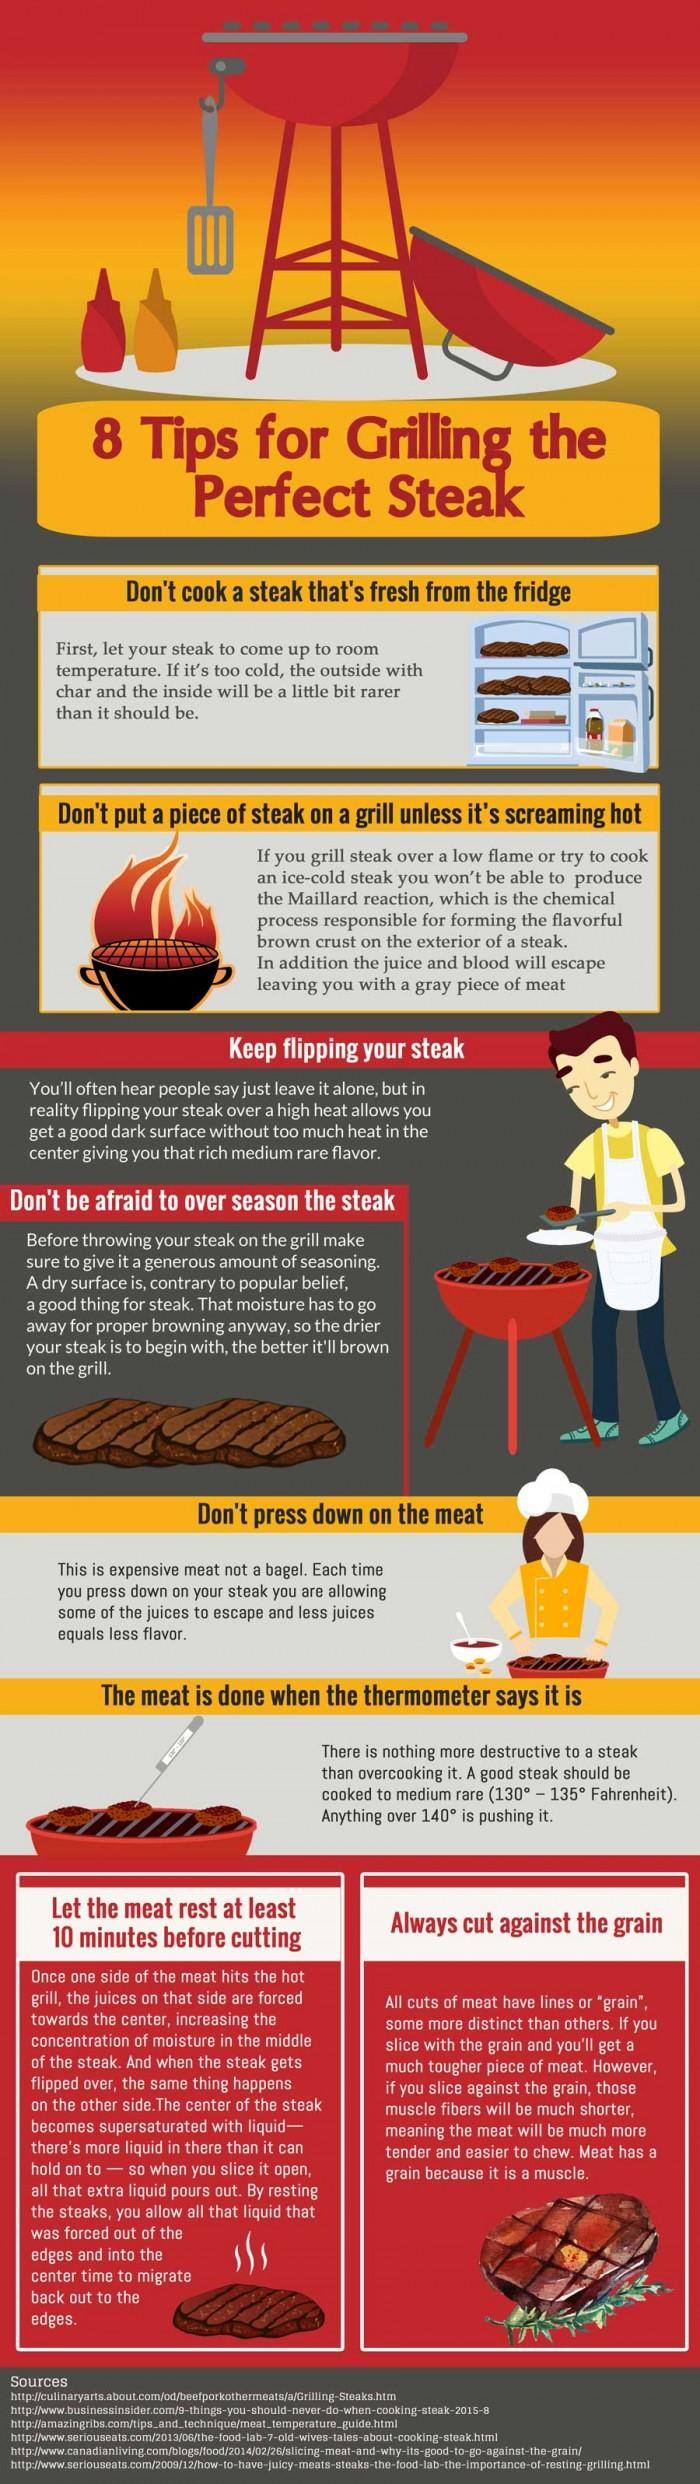 8 Tips For Grilling The Perfect Steak